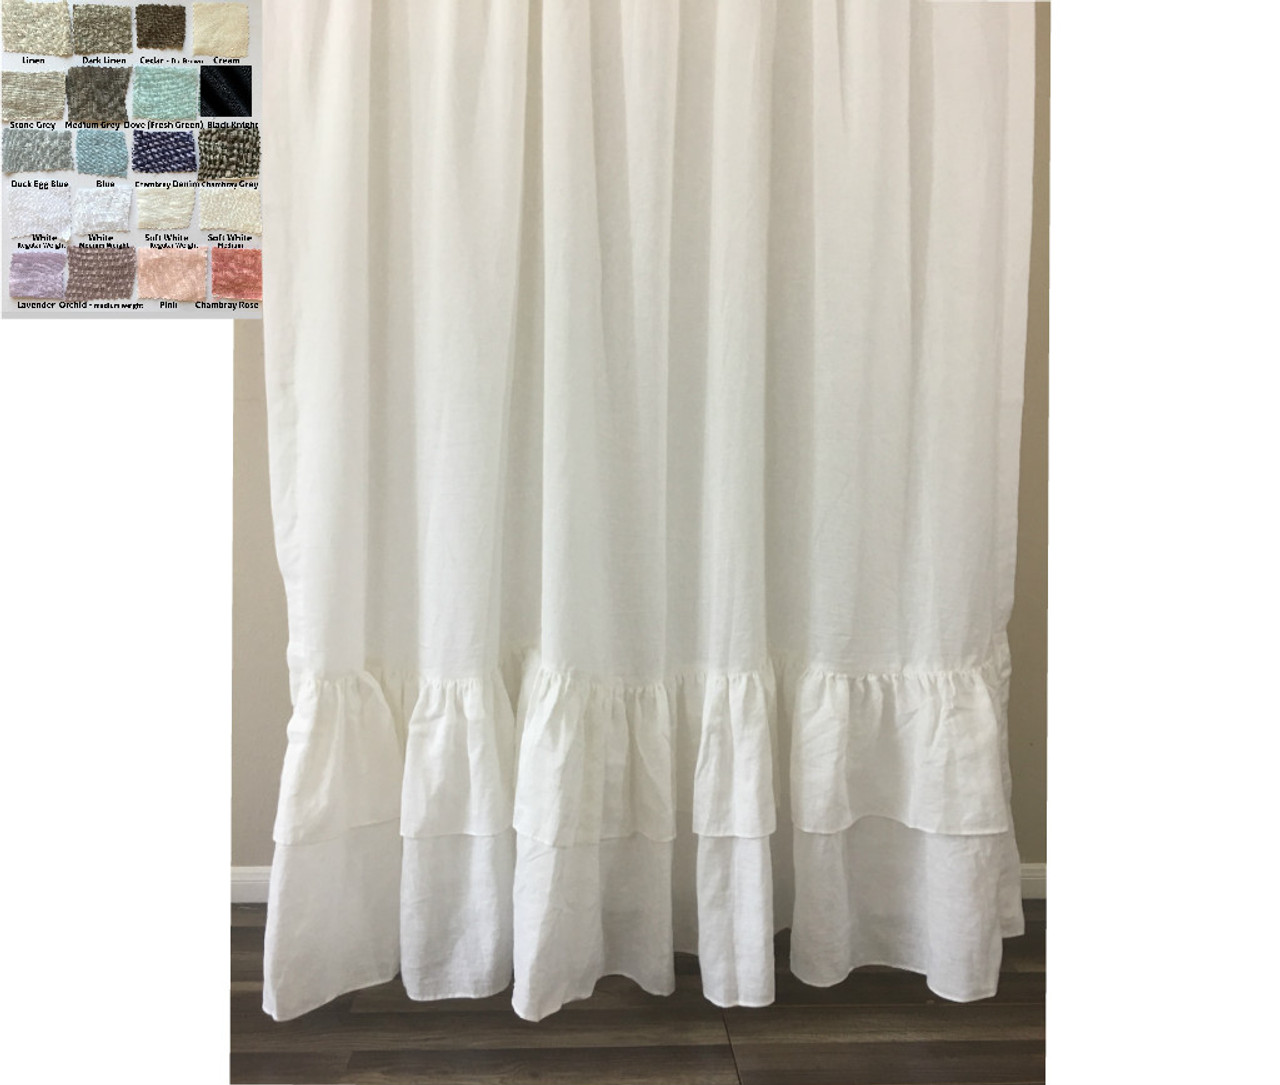 Natural Linen Curtains With Double Layer Mermaid Ruffle Hem, Multiple Colors